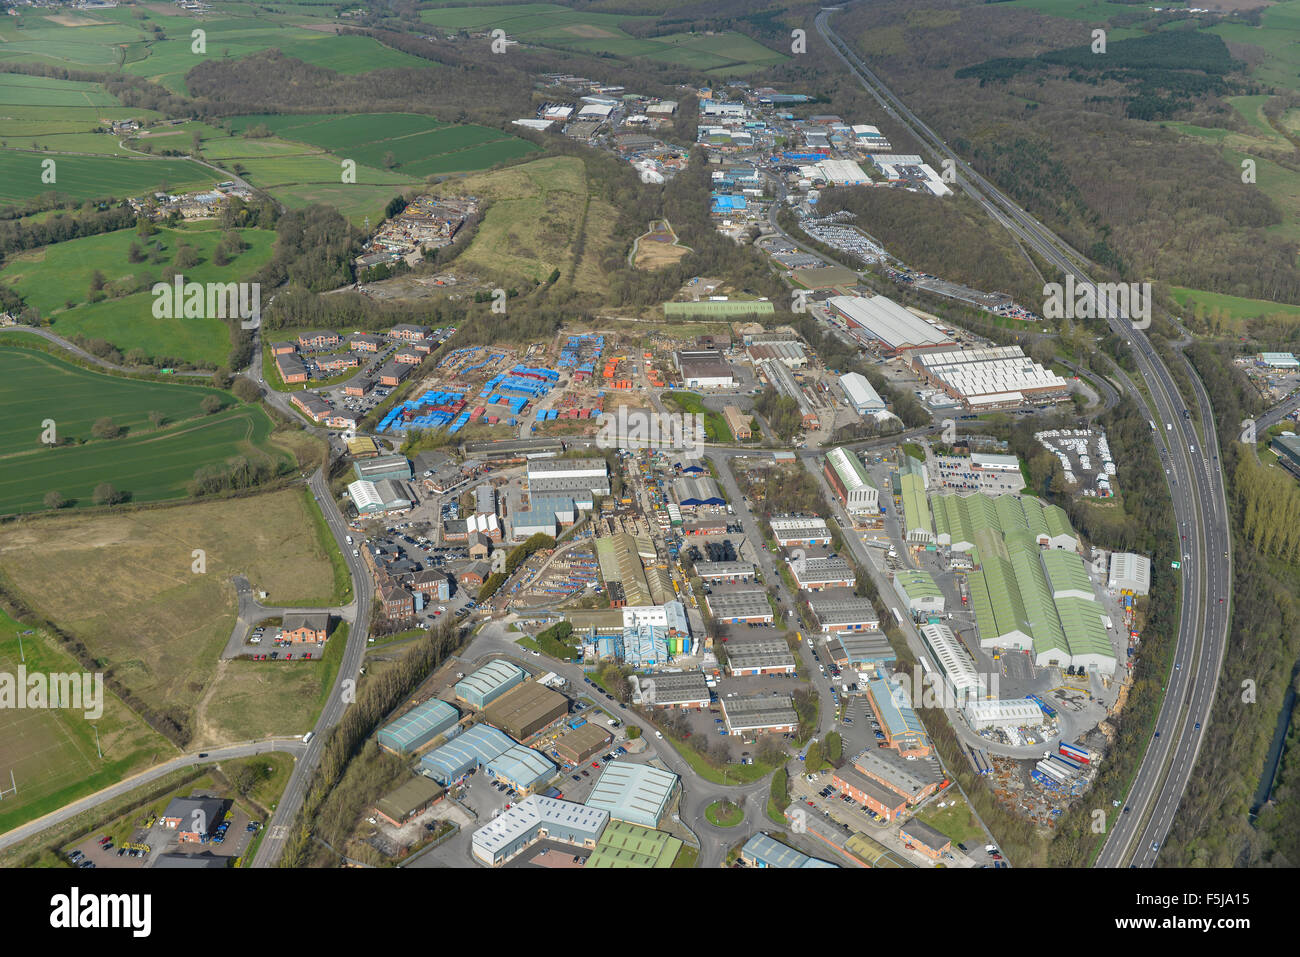 An aerial view of Dunston Trading Estate near Chesterfield in Derbyshire - Stock Image